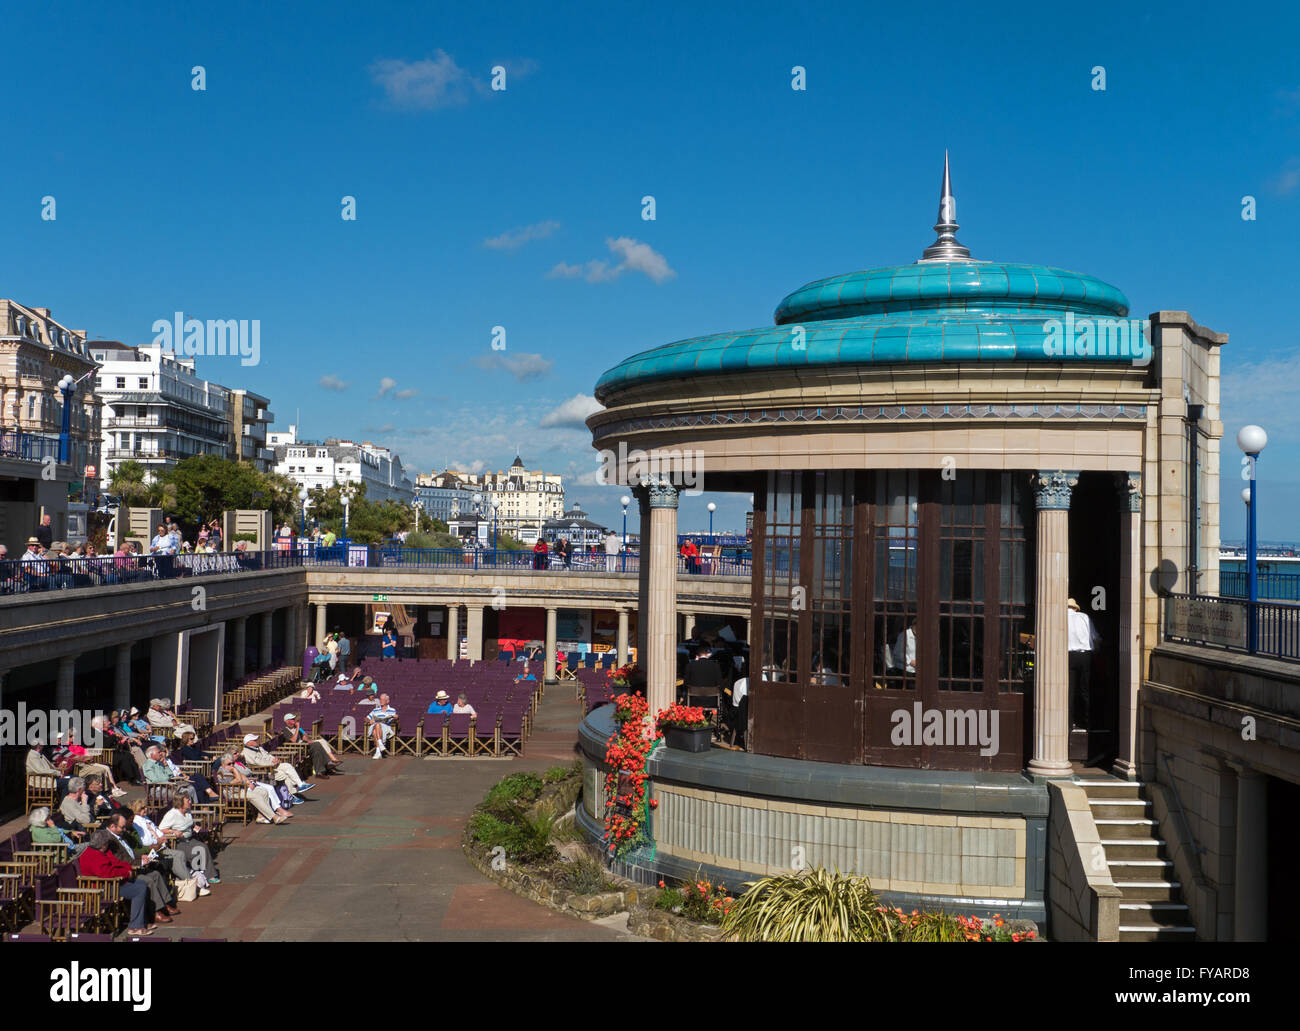 The Famous Eastbourne Bandstand and Seafront, Eastbourne, East Sussex, England - Stock Image